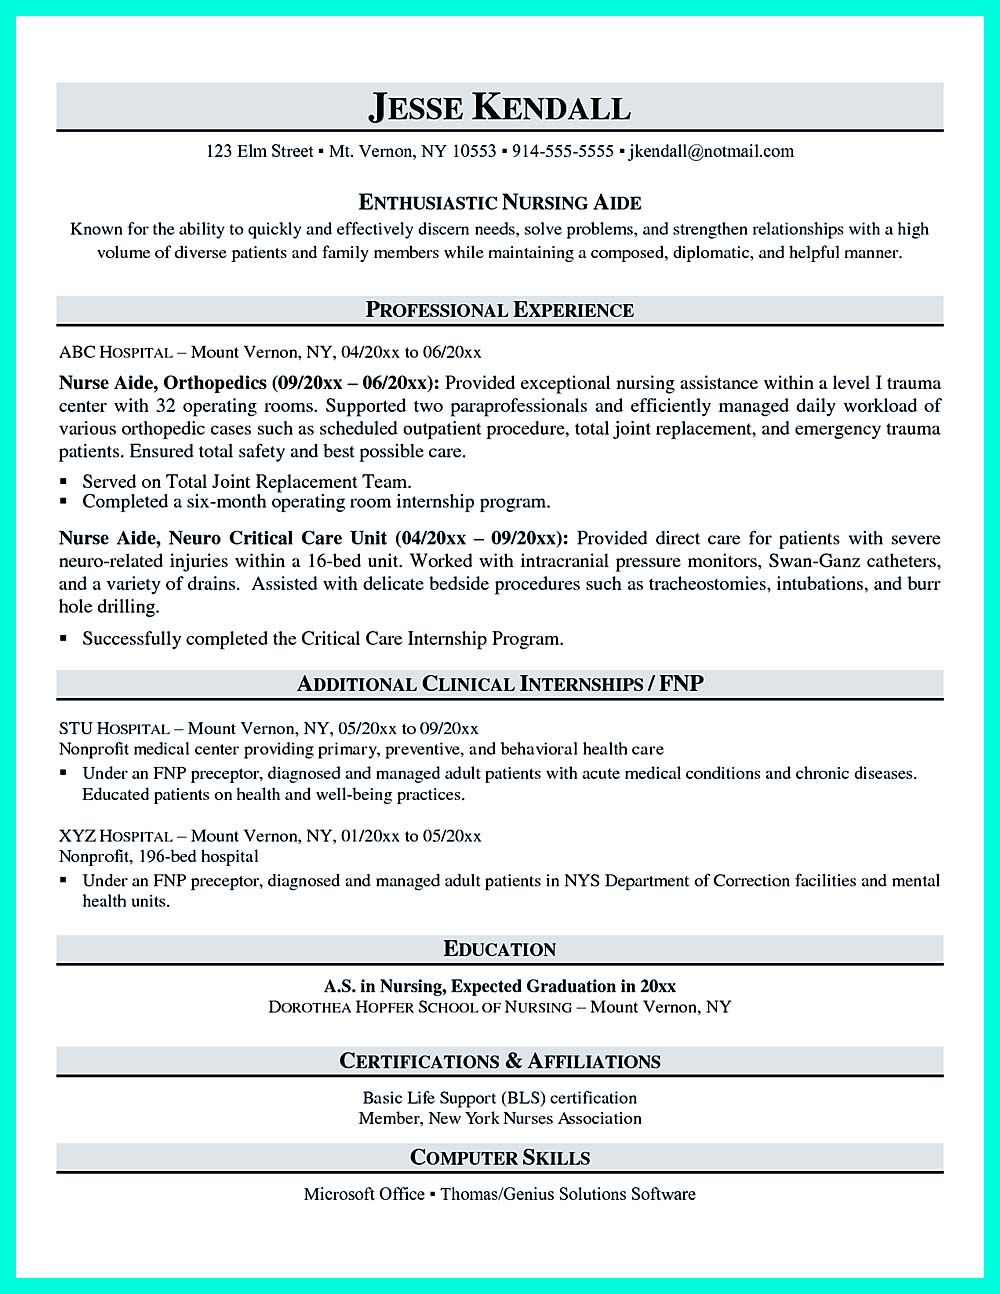 Nurse Manager Resume When You Are Trying To Make Flawless Case Management Resume Make